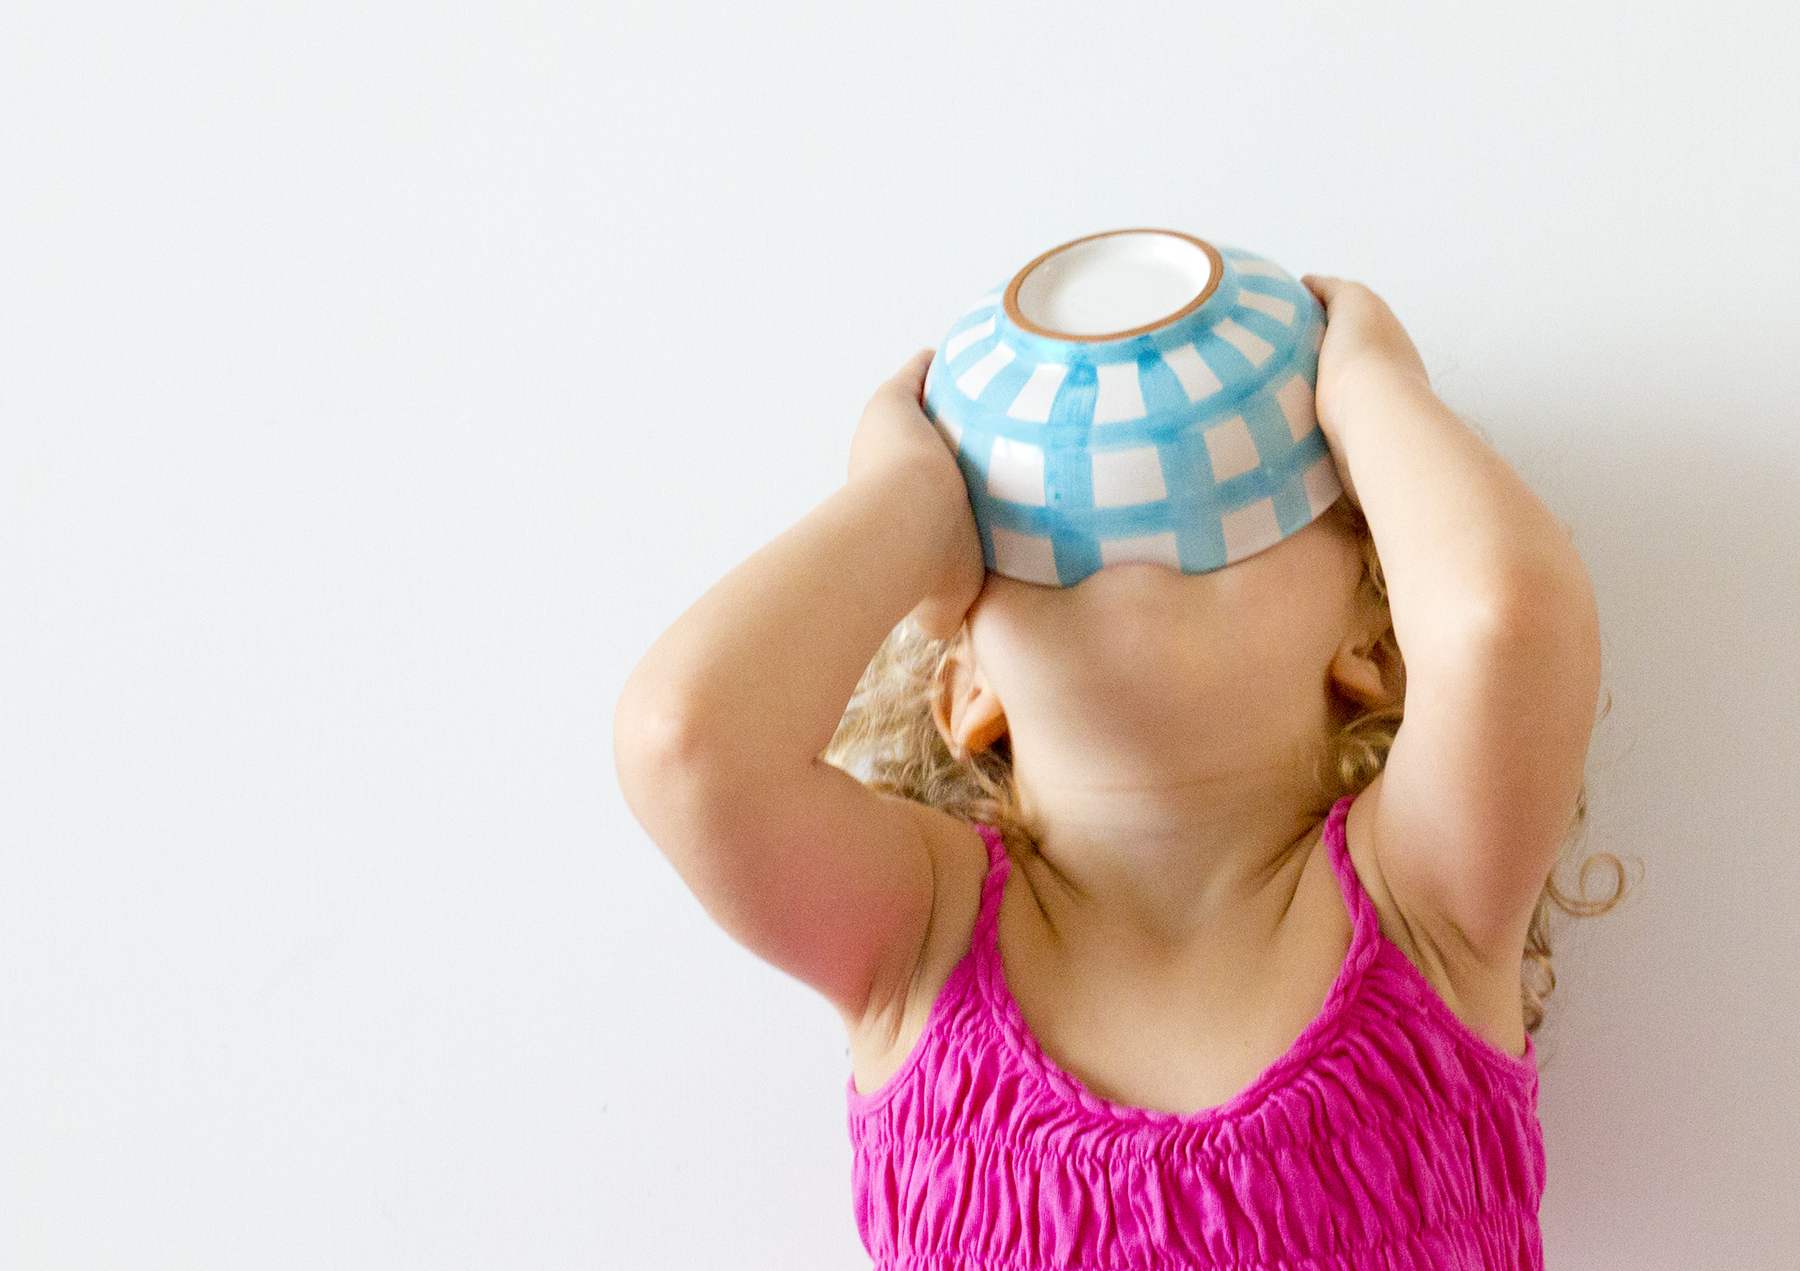 Girl drinking from cereal bowl